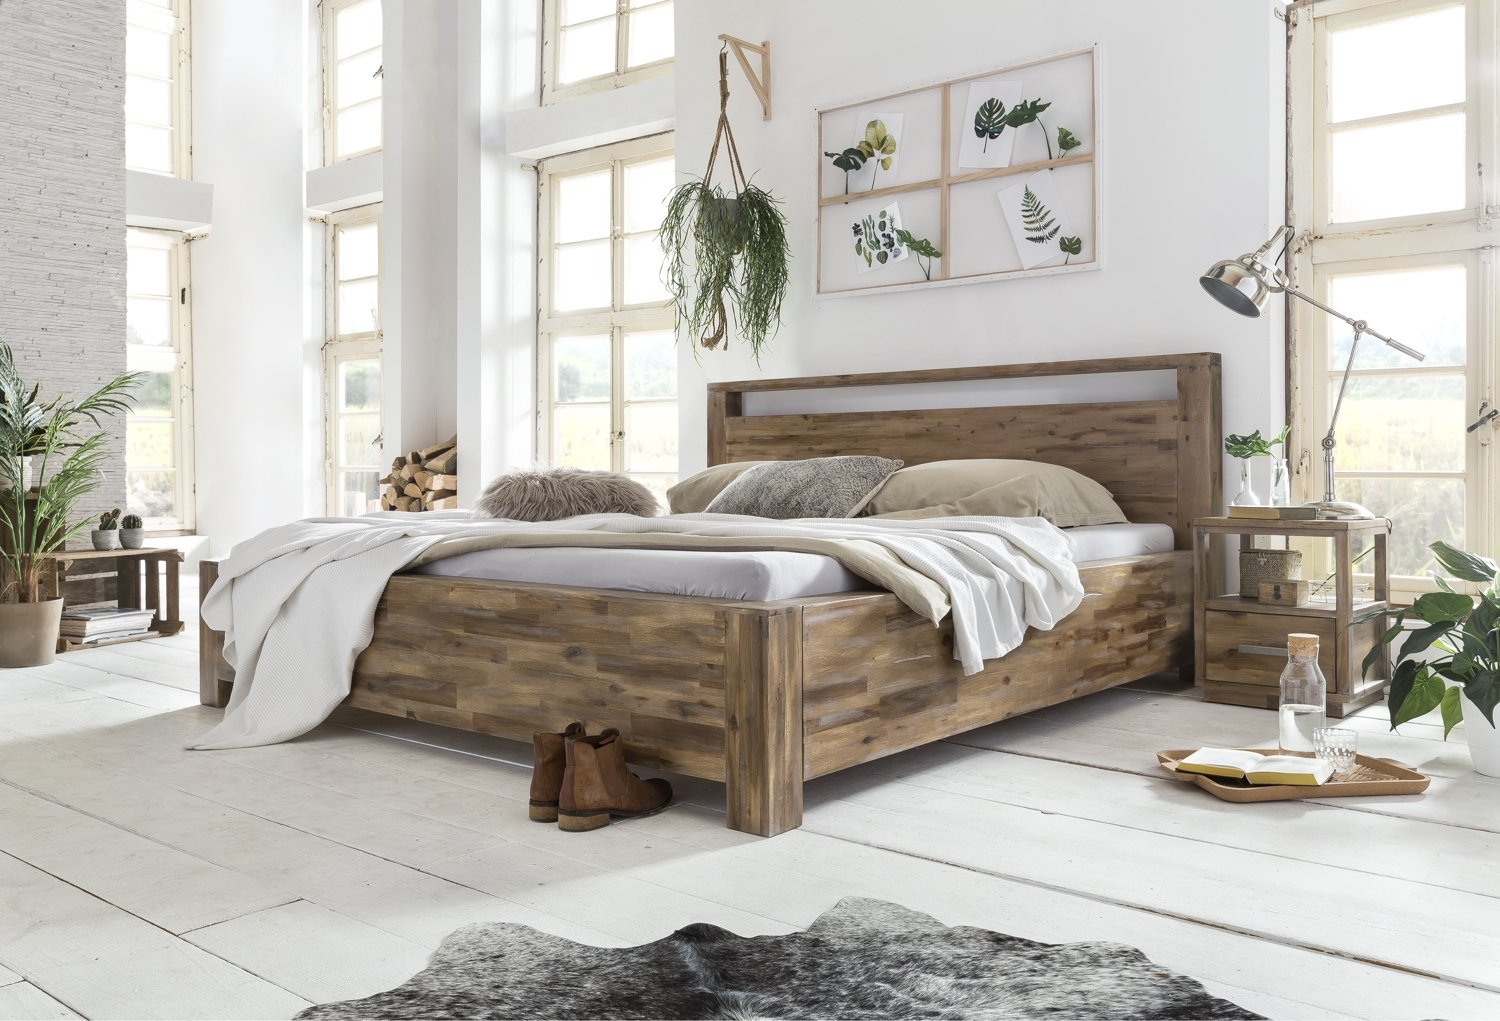 Woodkings® Holz Bett 180x200 Havelock Doppelbett Akazie rustic ...